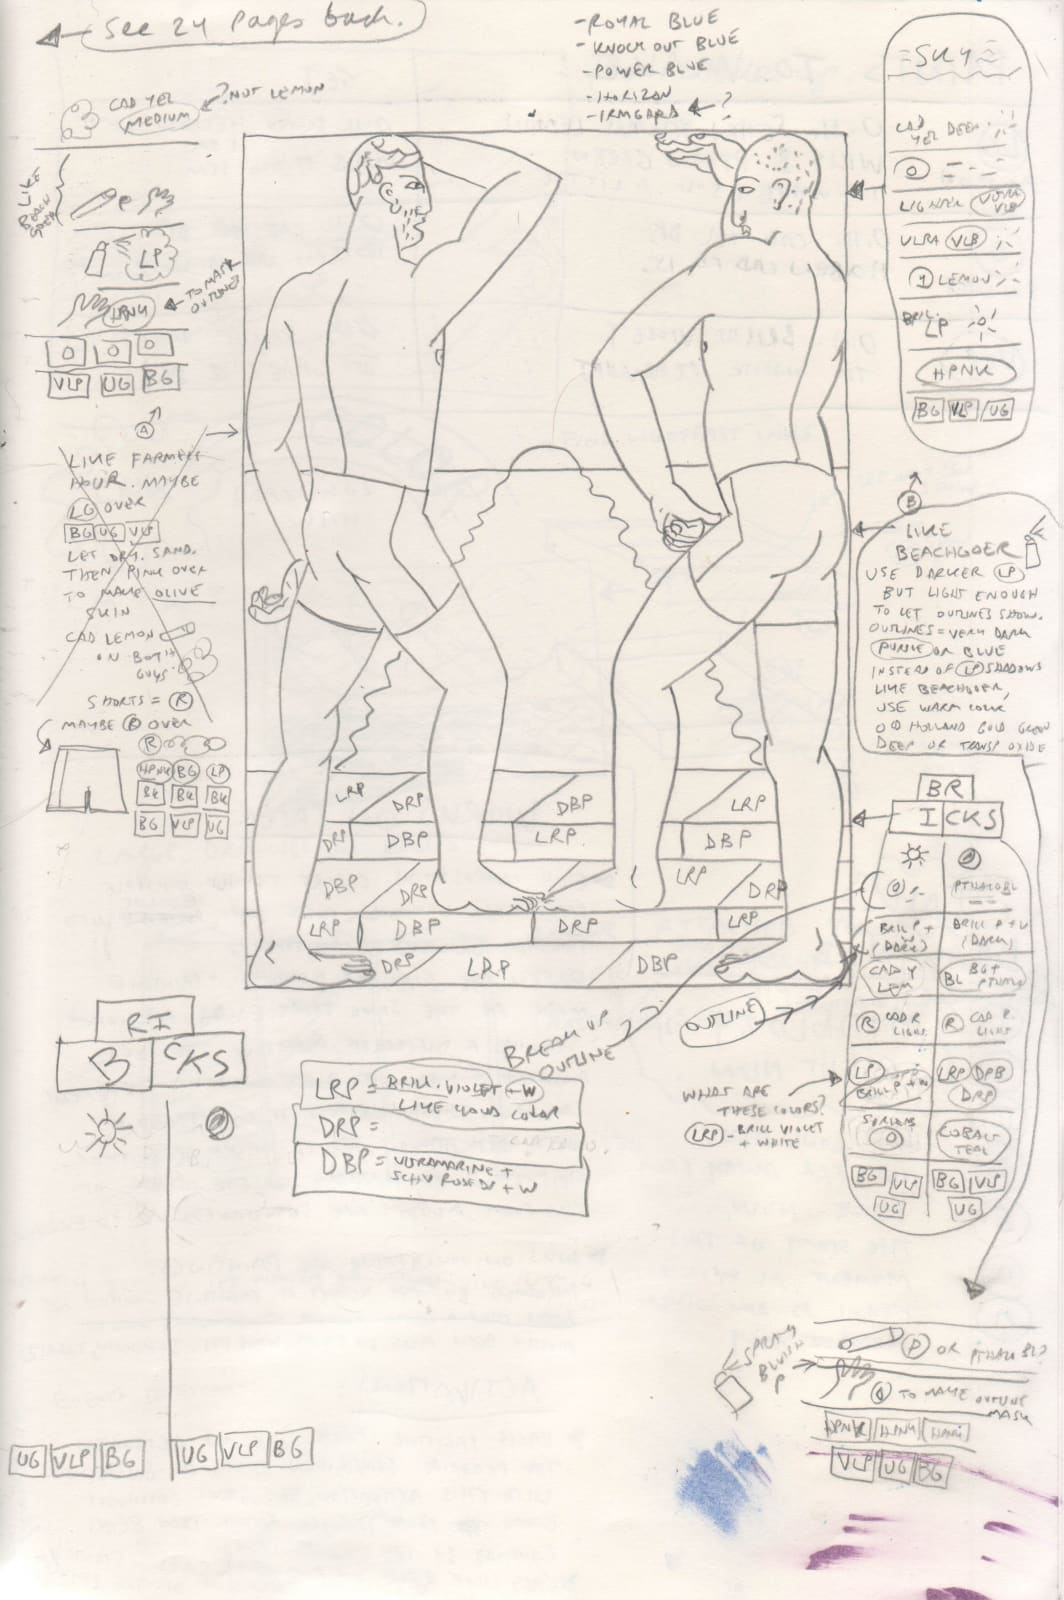 These working drawings function as blueprints. Degen uses them the same way that one would use shop drawings to build furniture or fabricate objects.